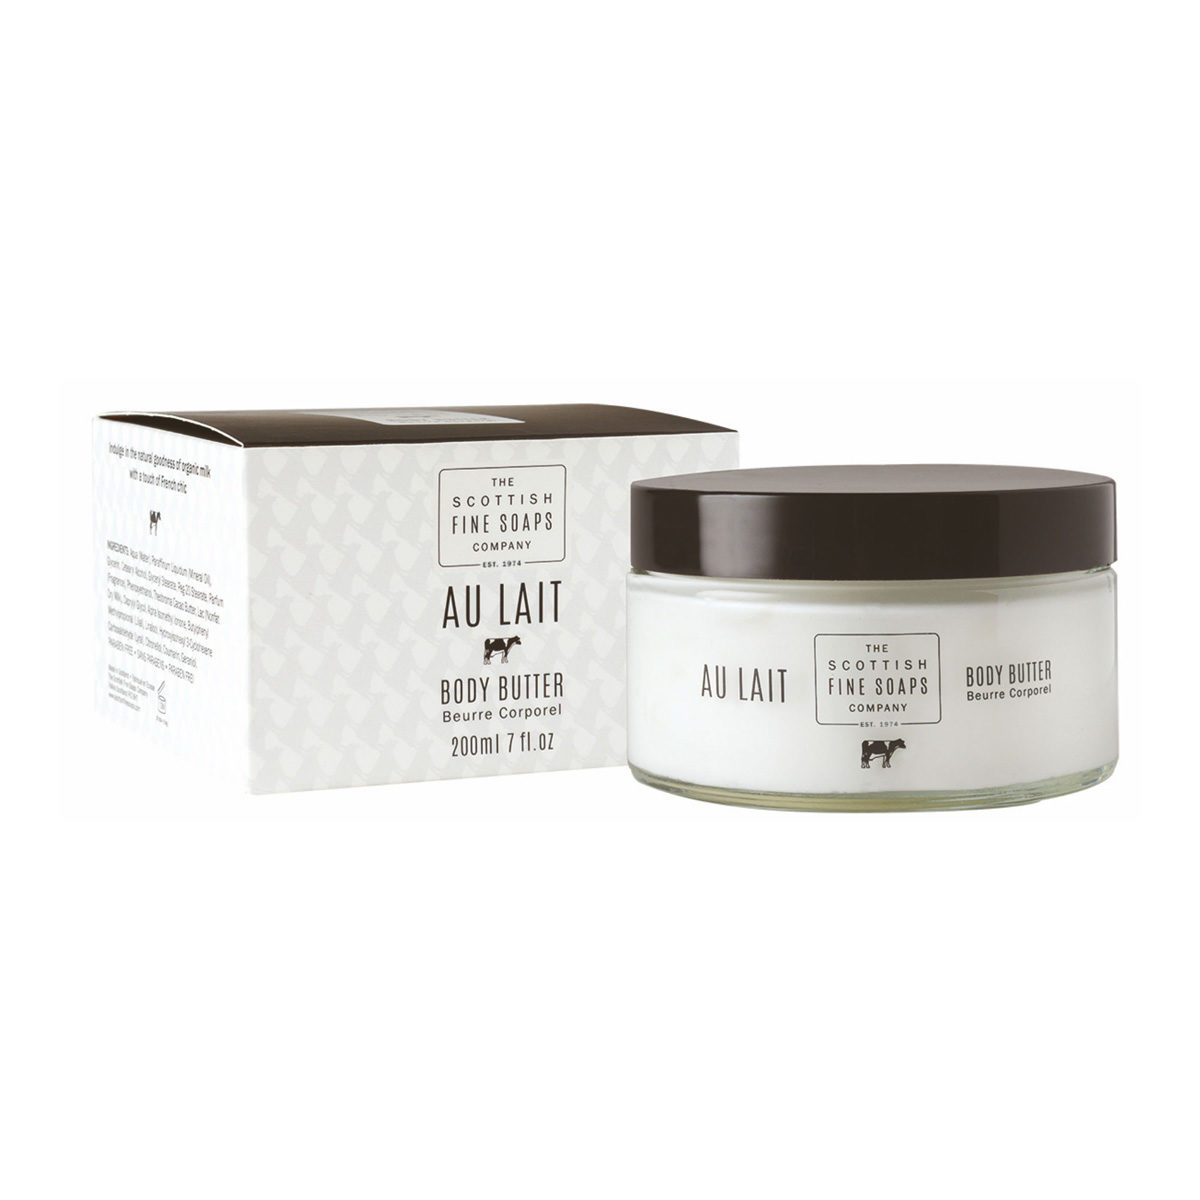 Au Lait Body Butter Jar